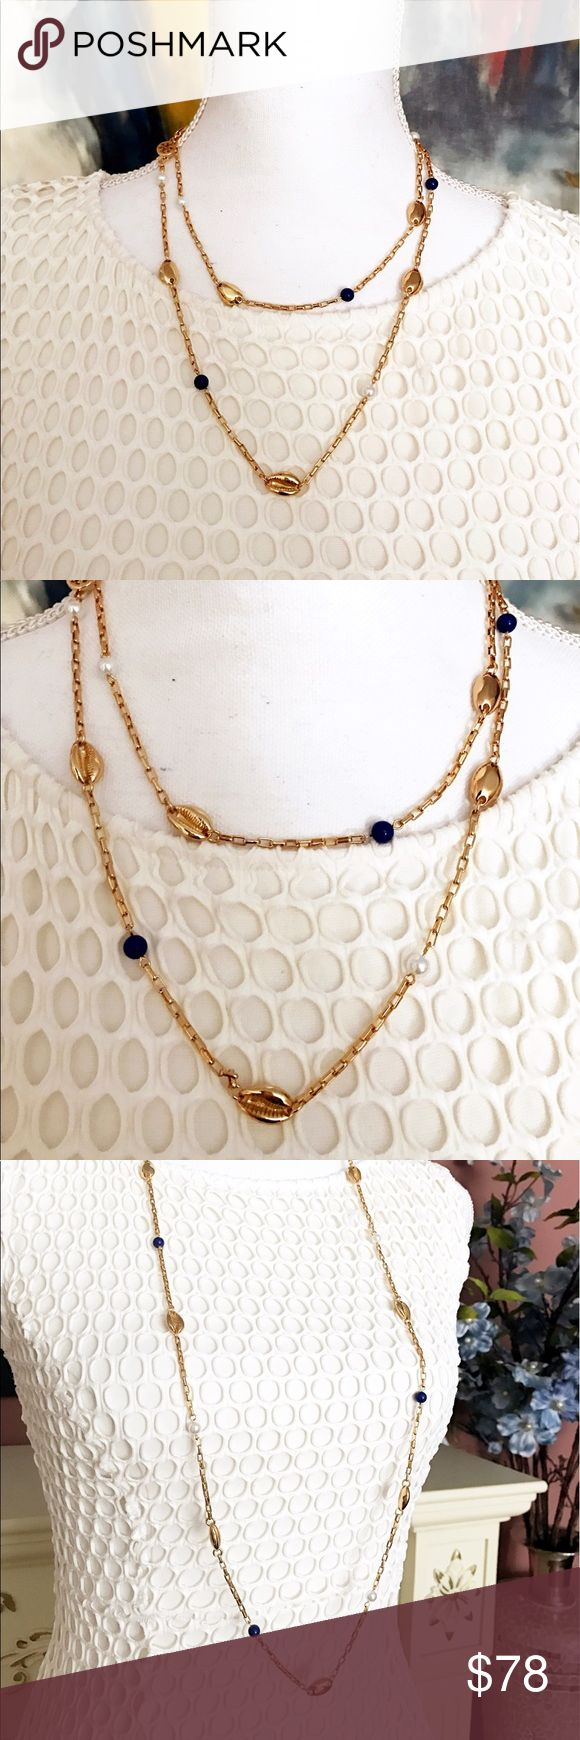 Tory burch gold shell pearl necklace $145 NEW